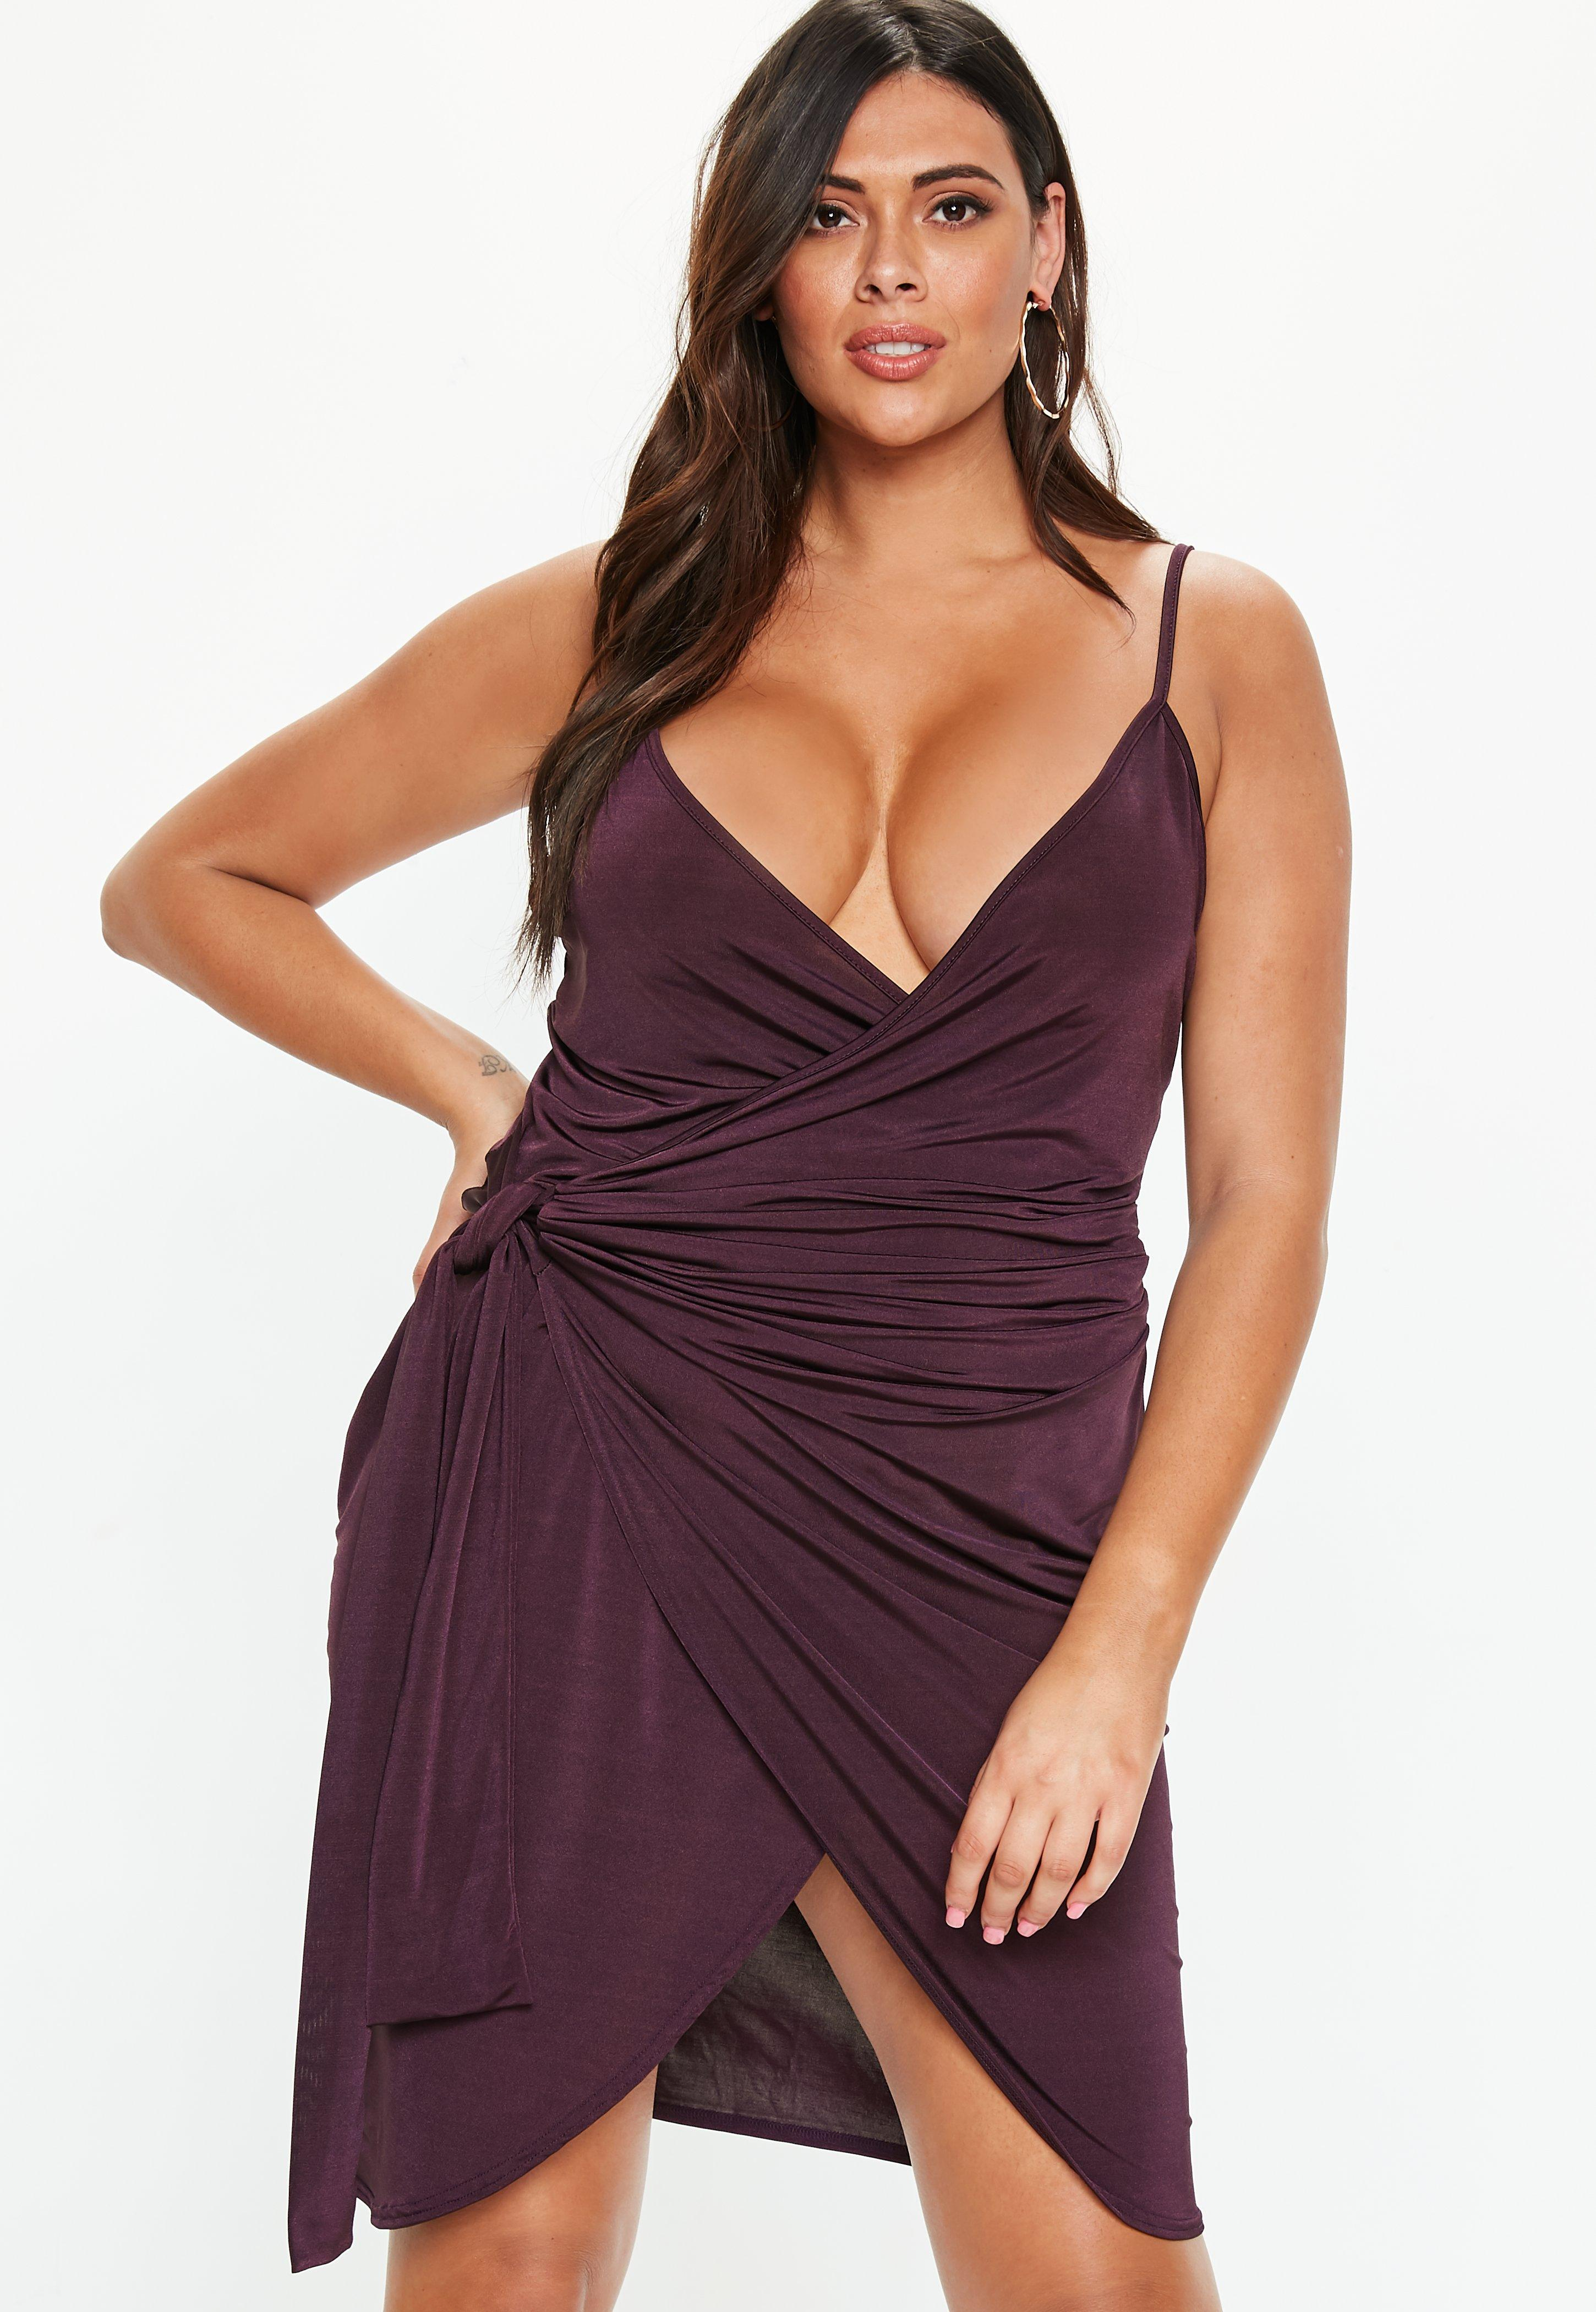 Lyst - Missguided Plus Size Plum Wrap Cami Dress in Purple